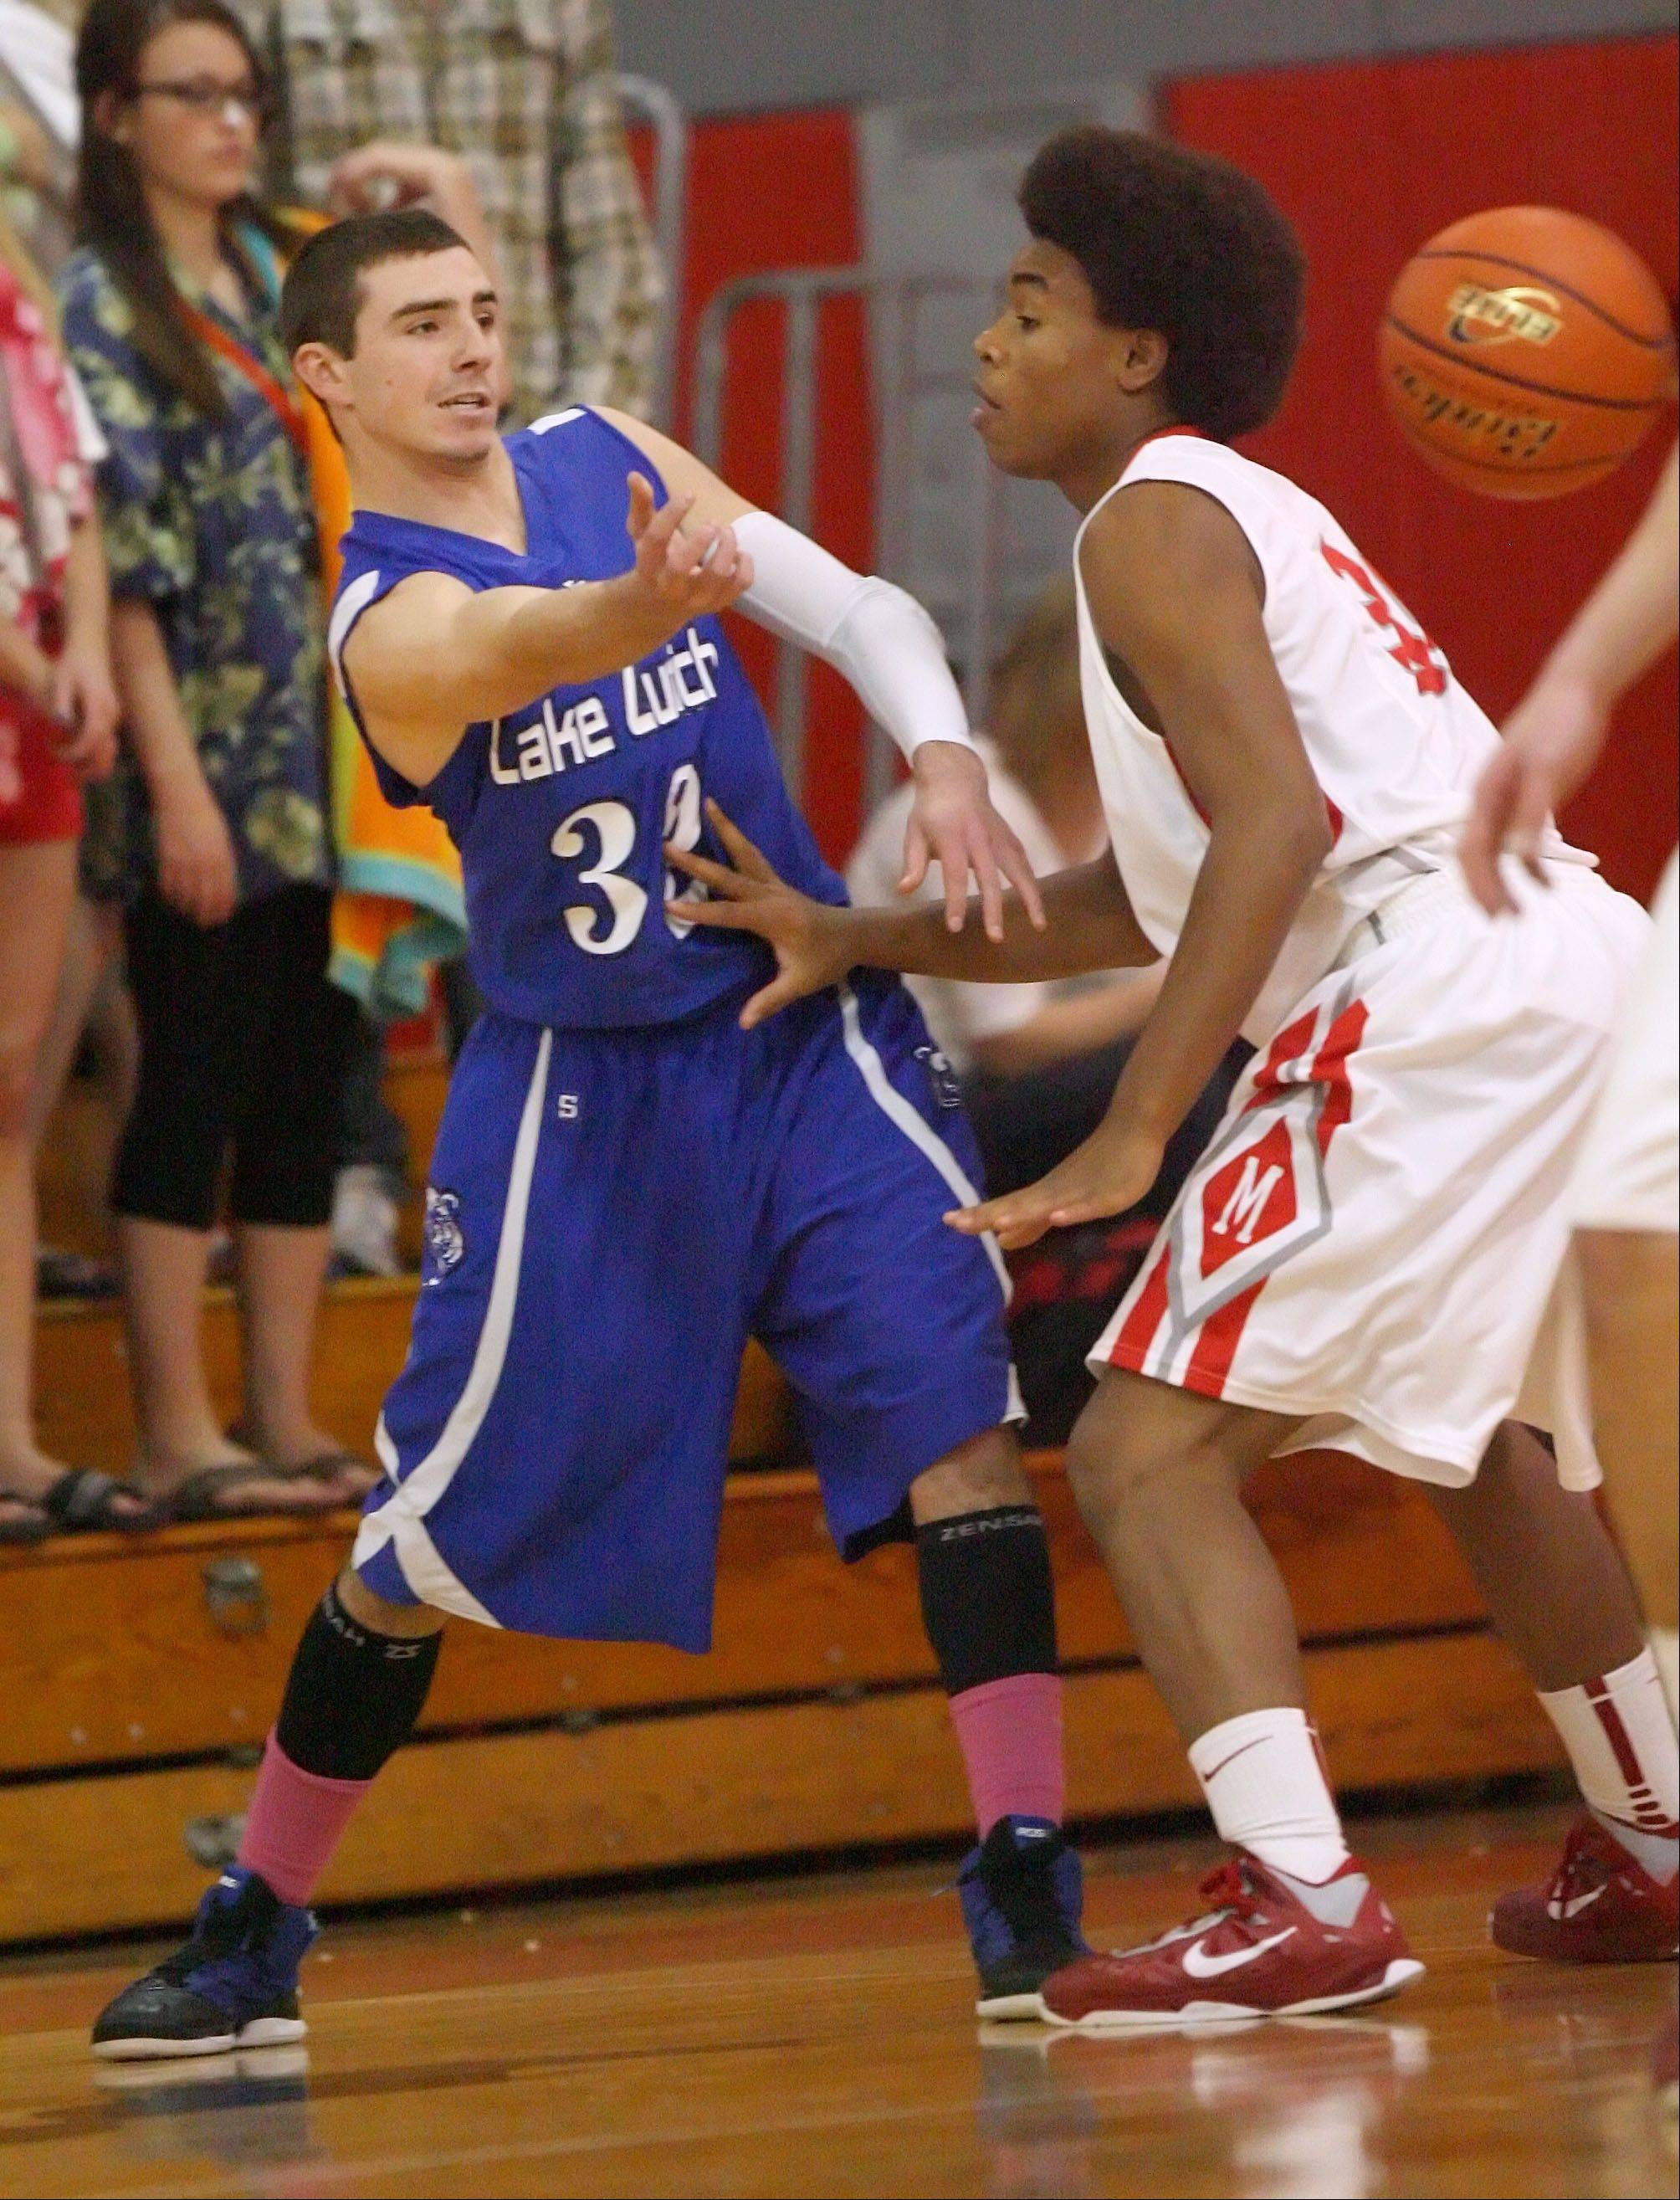 Lake Zurich's John Repplinger, left, dishes off the ball around Mundelein's Cliff Dunigan on Tuesday night at Mundelein.